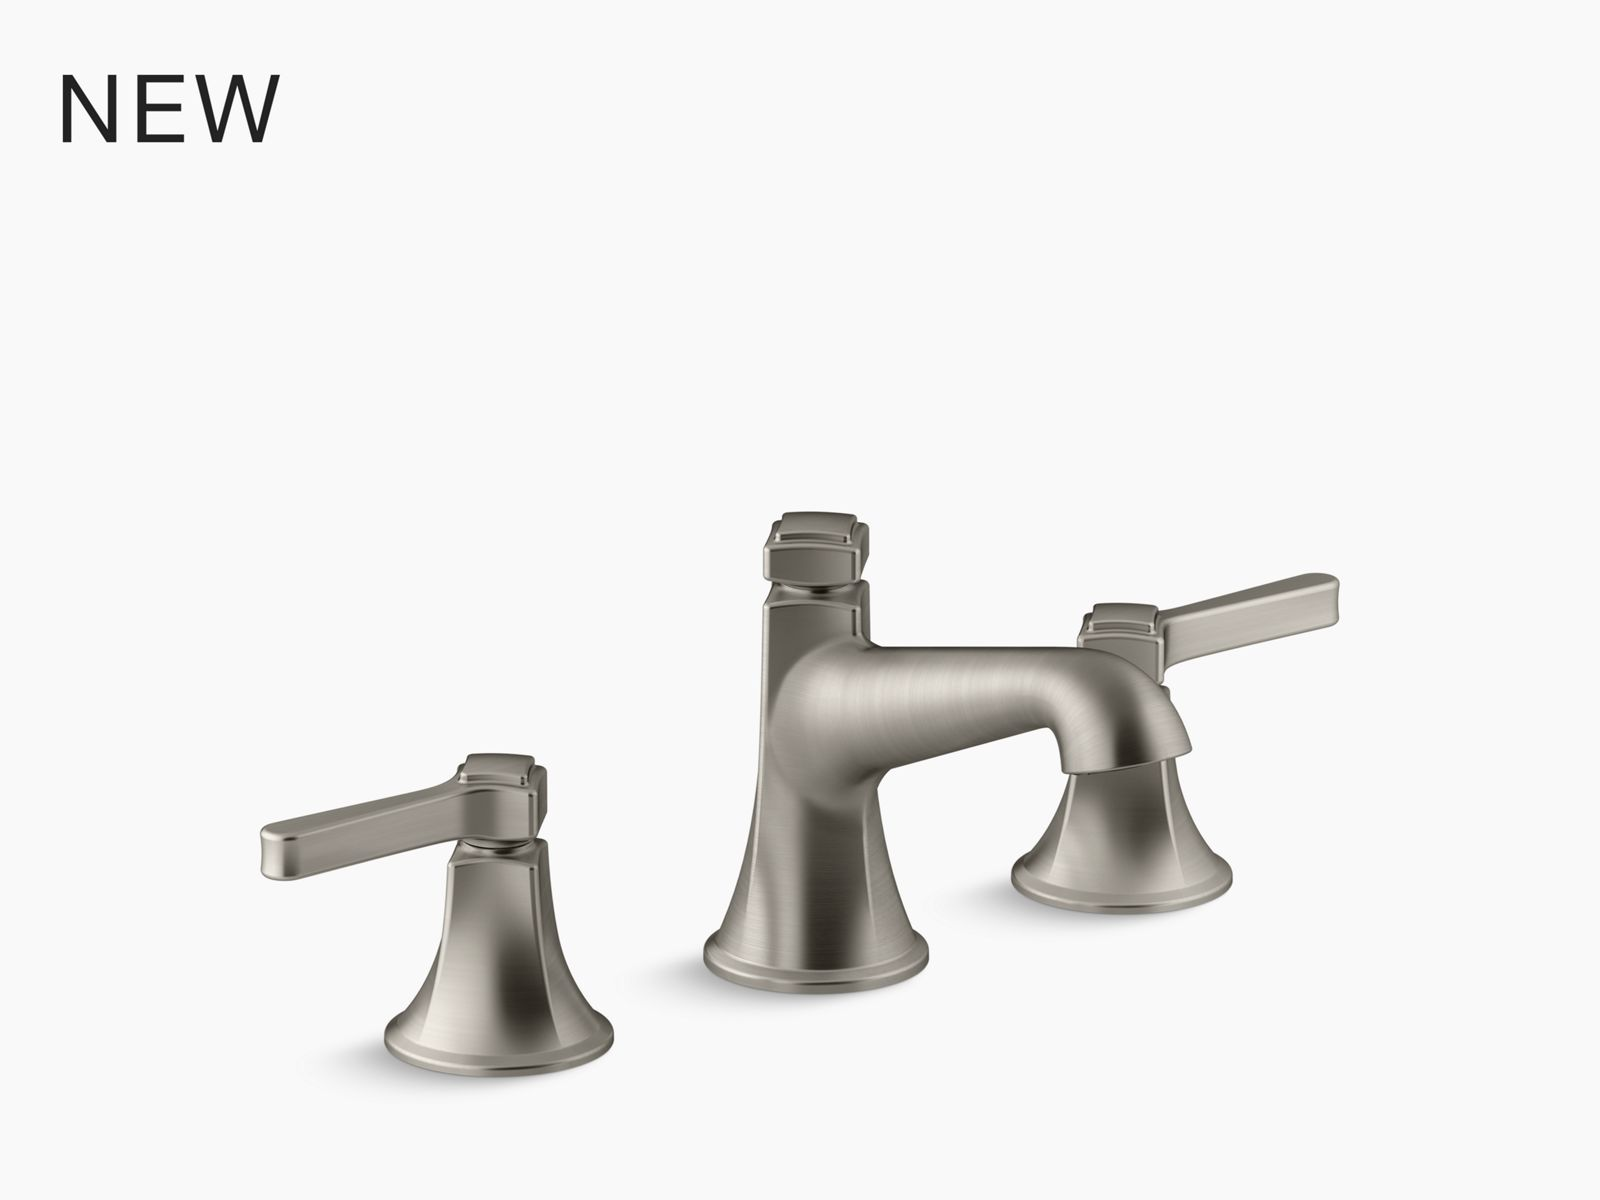 ceramic impressions 37 rectangular vanity top bathroom sink with 8 widespread faucet holes